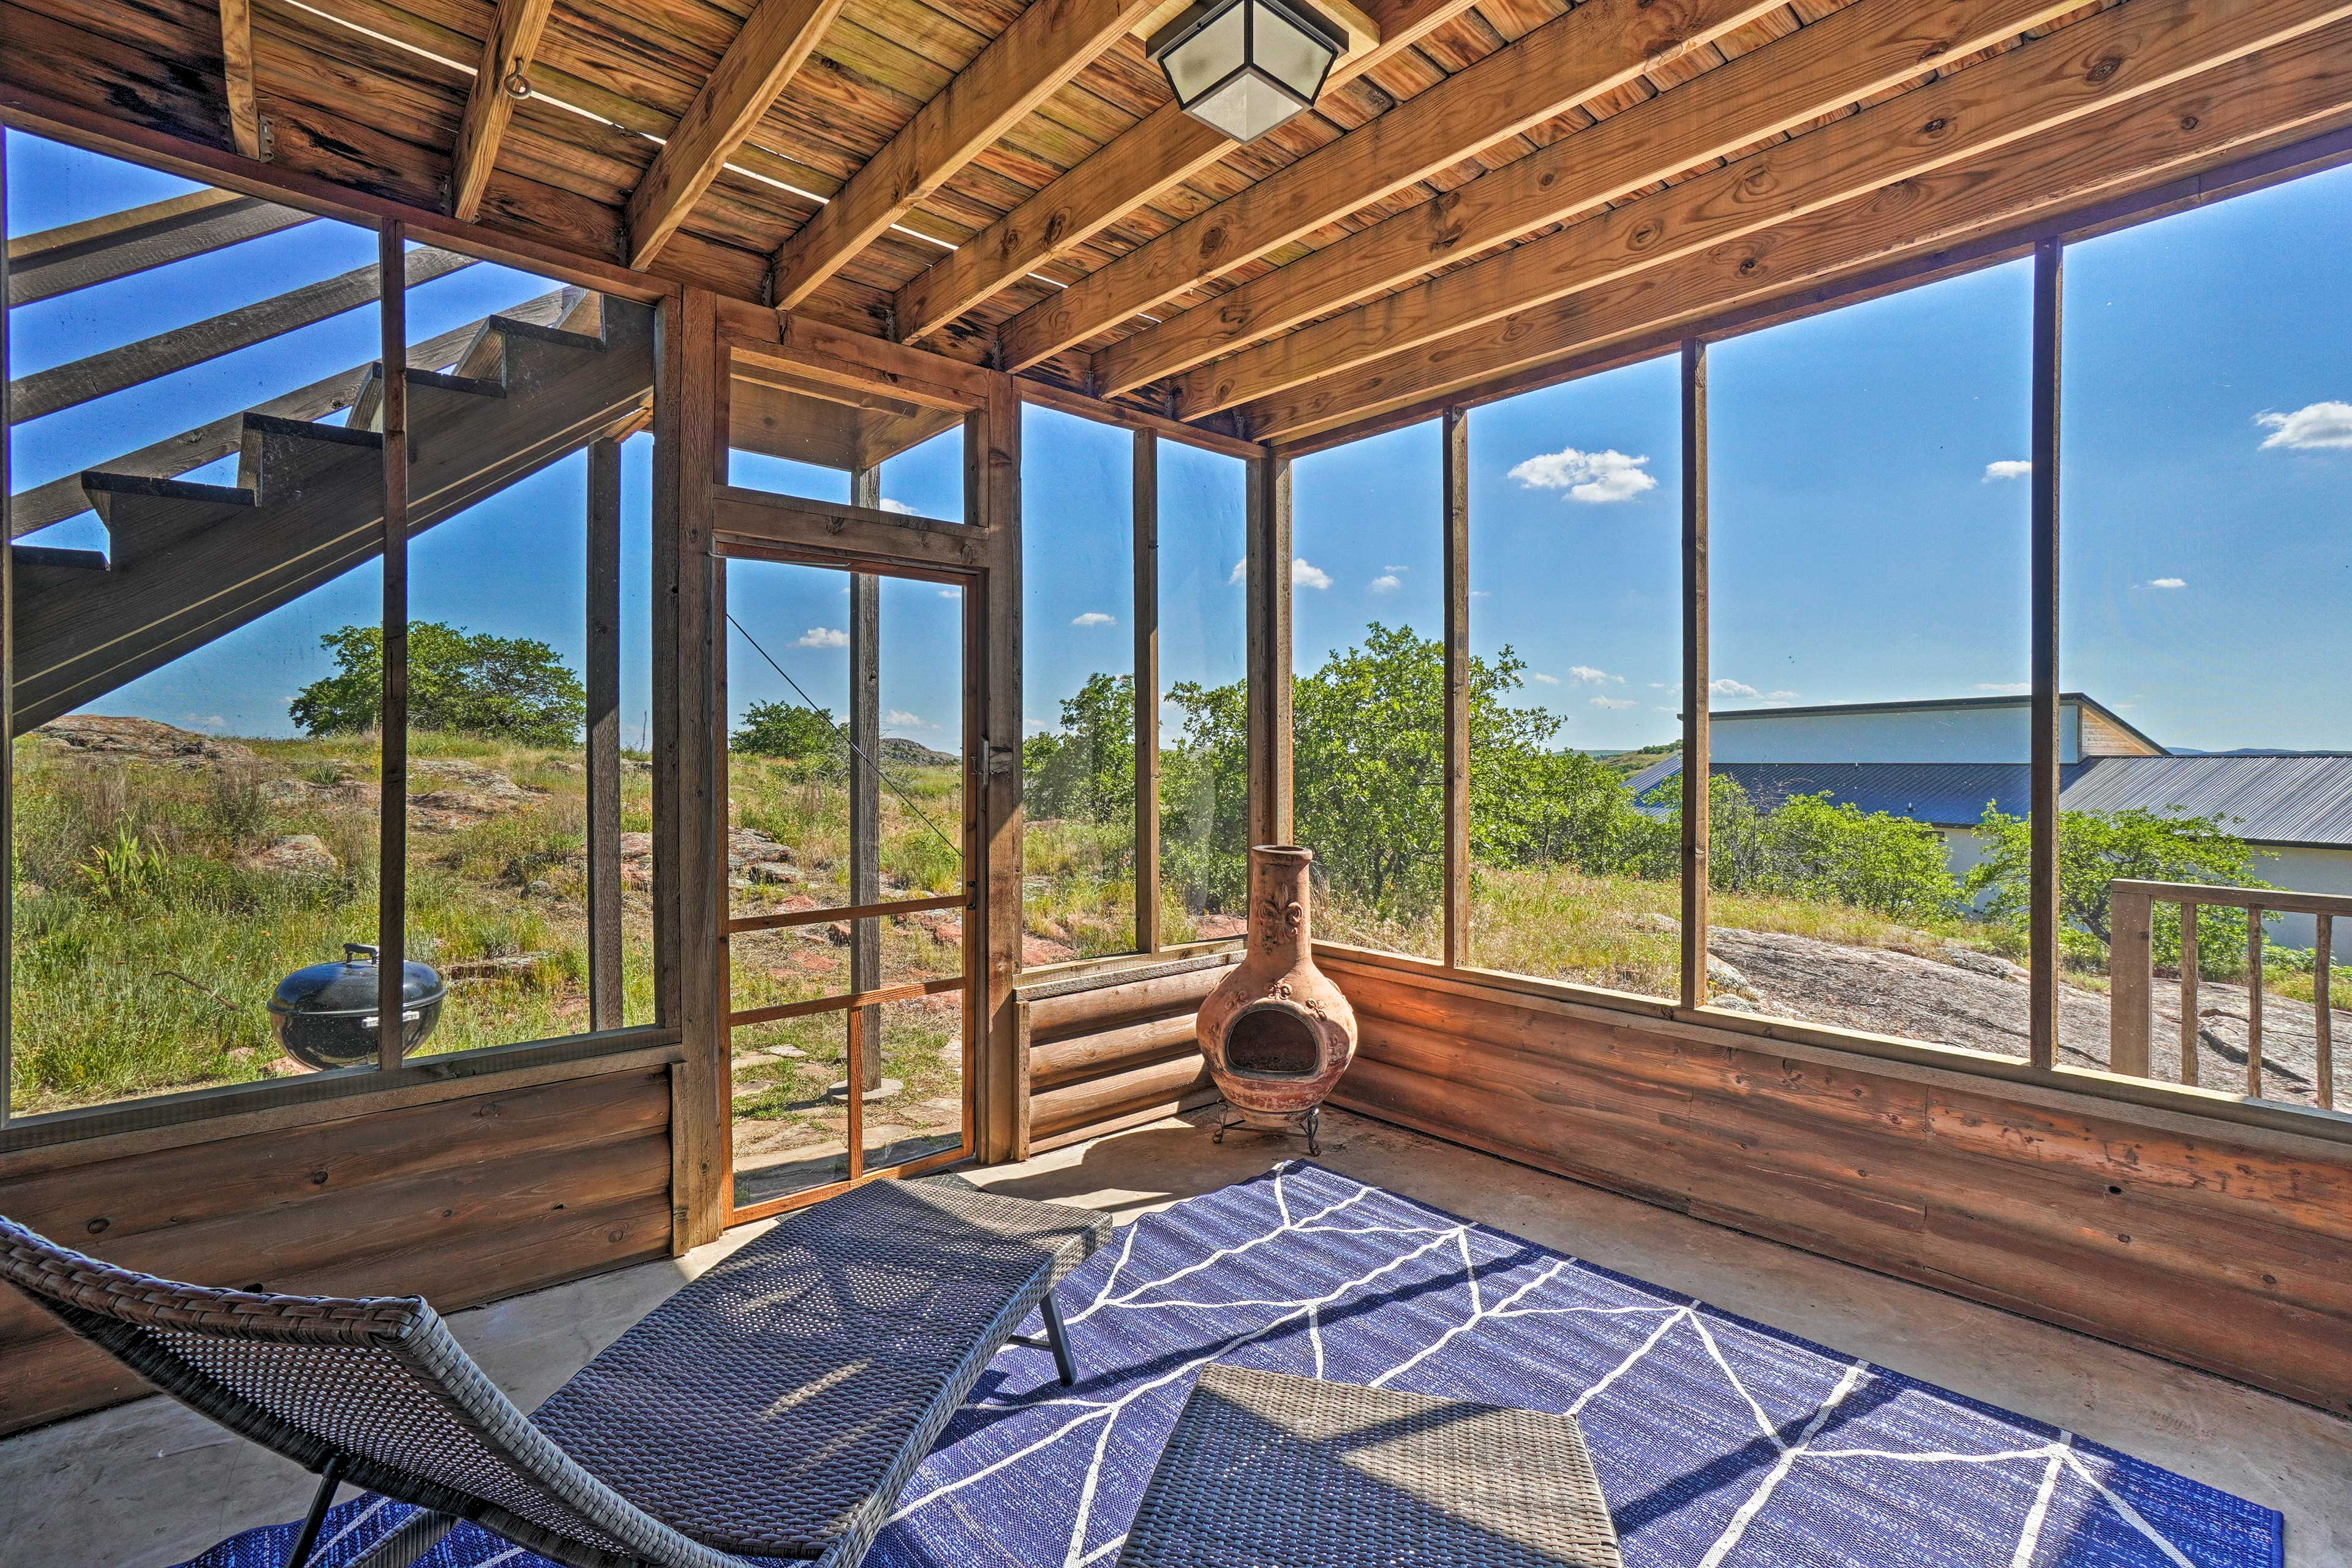 Sip your morning coffee in the sunroom.